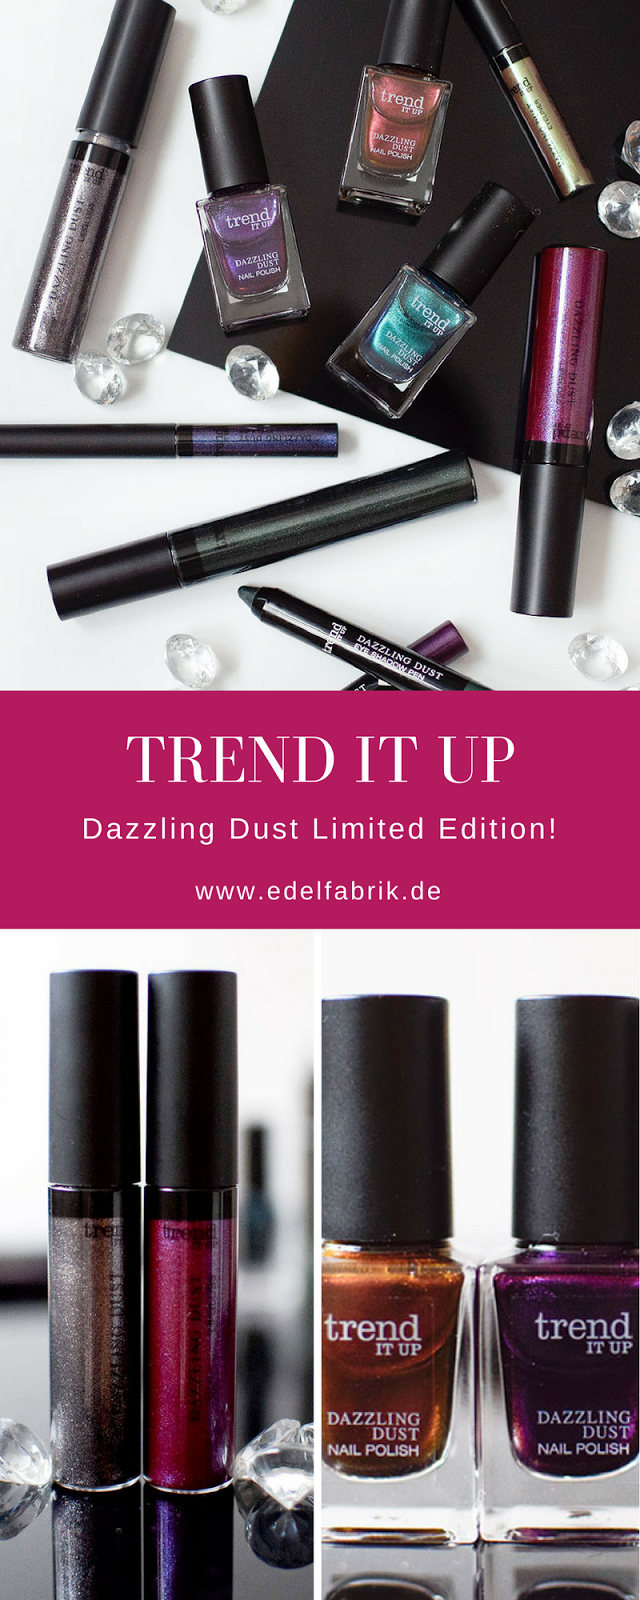 Review zu trend IT UP Dazzling Dust LE